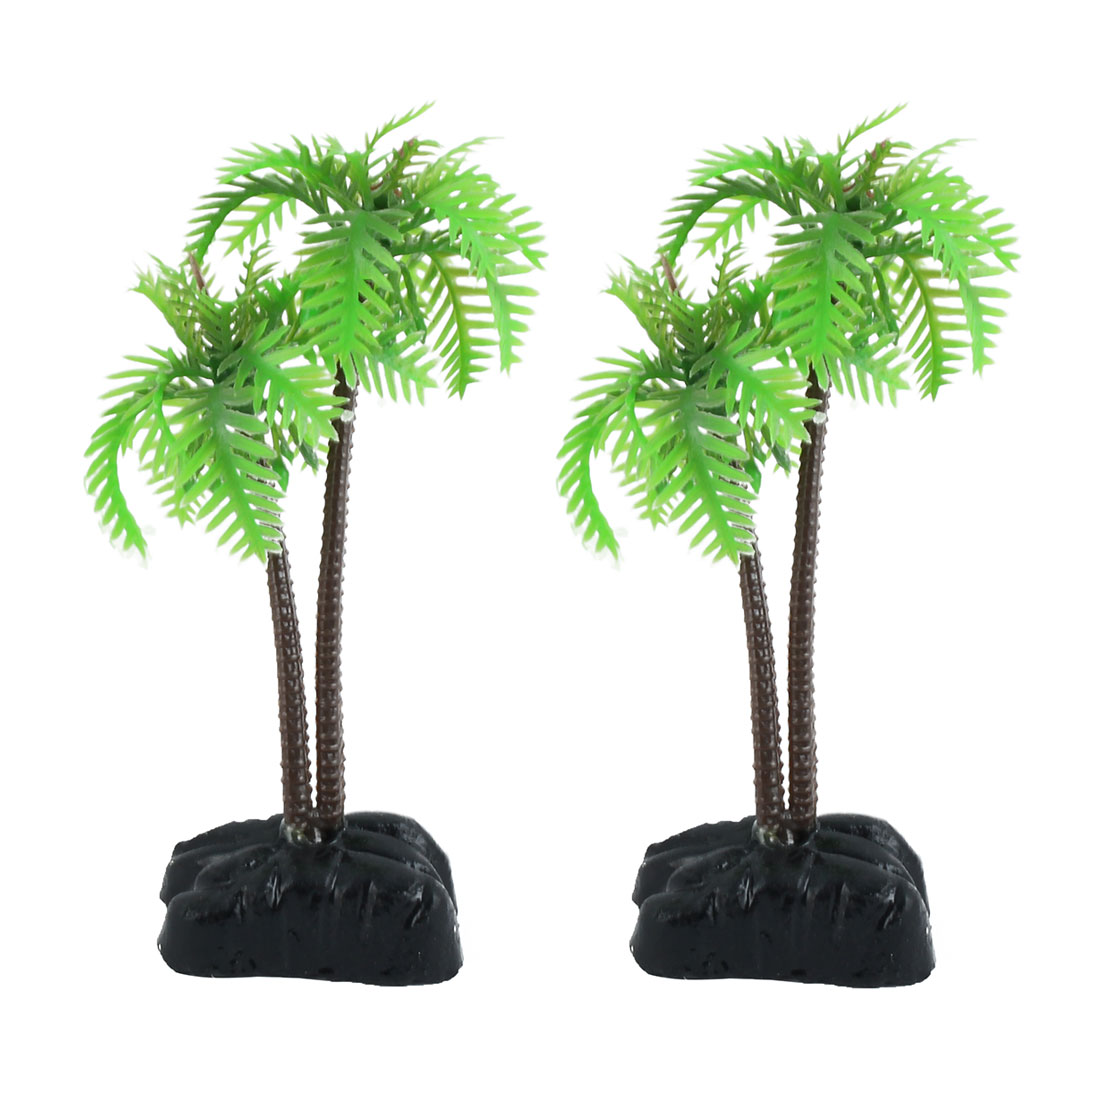 2 PCS Plastic Coco Tree Plants for Fish Tank Aquarium Deocr